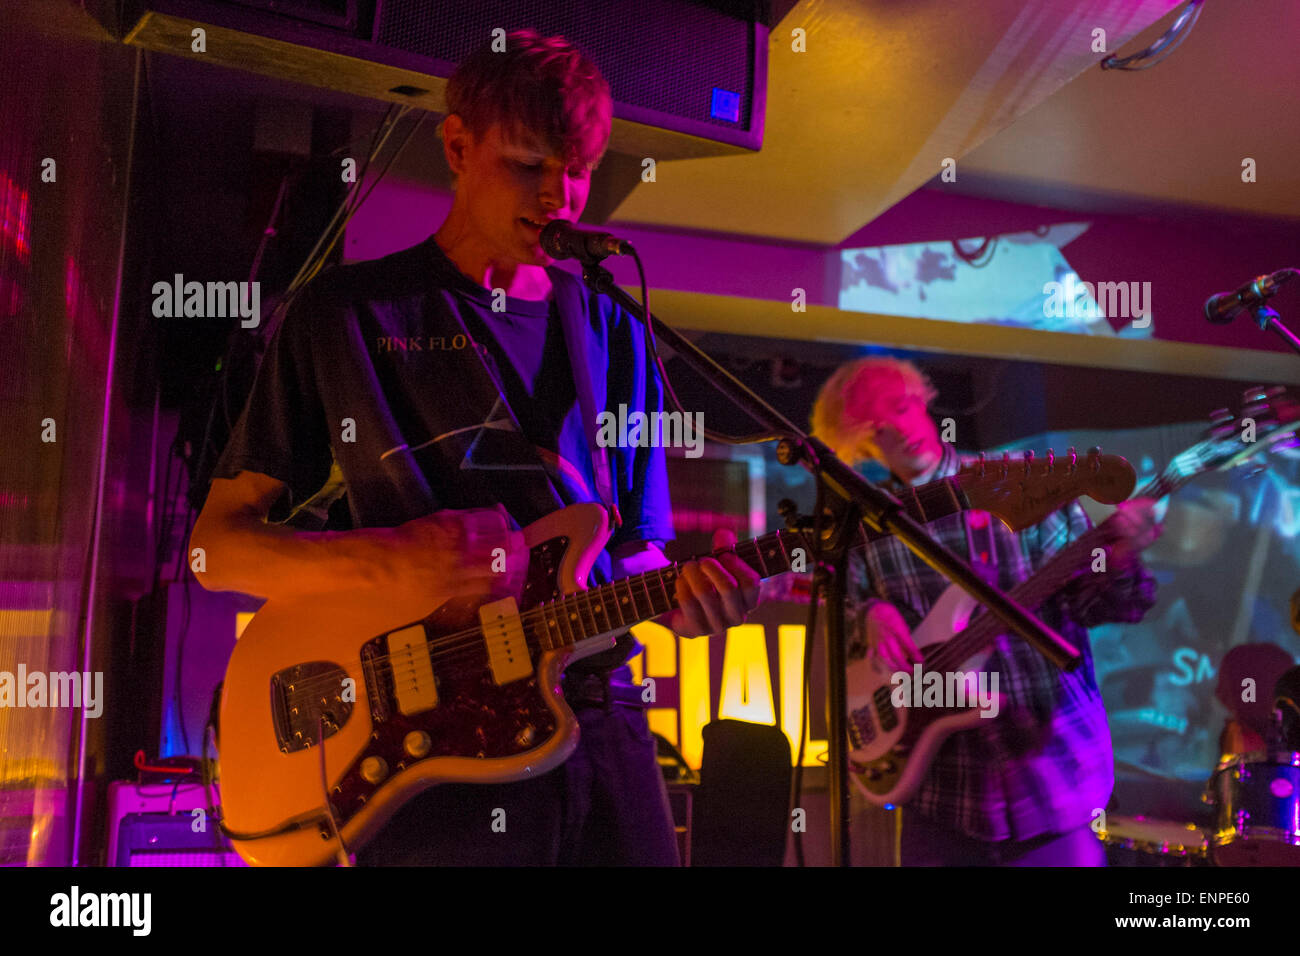 London, UK. Wednesday 22nd April 2015. Indie band Crushed Beaks playing live at The Social in London. Stock Photo